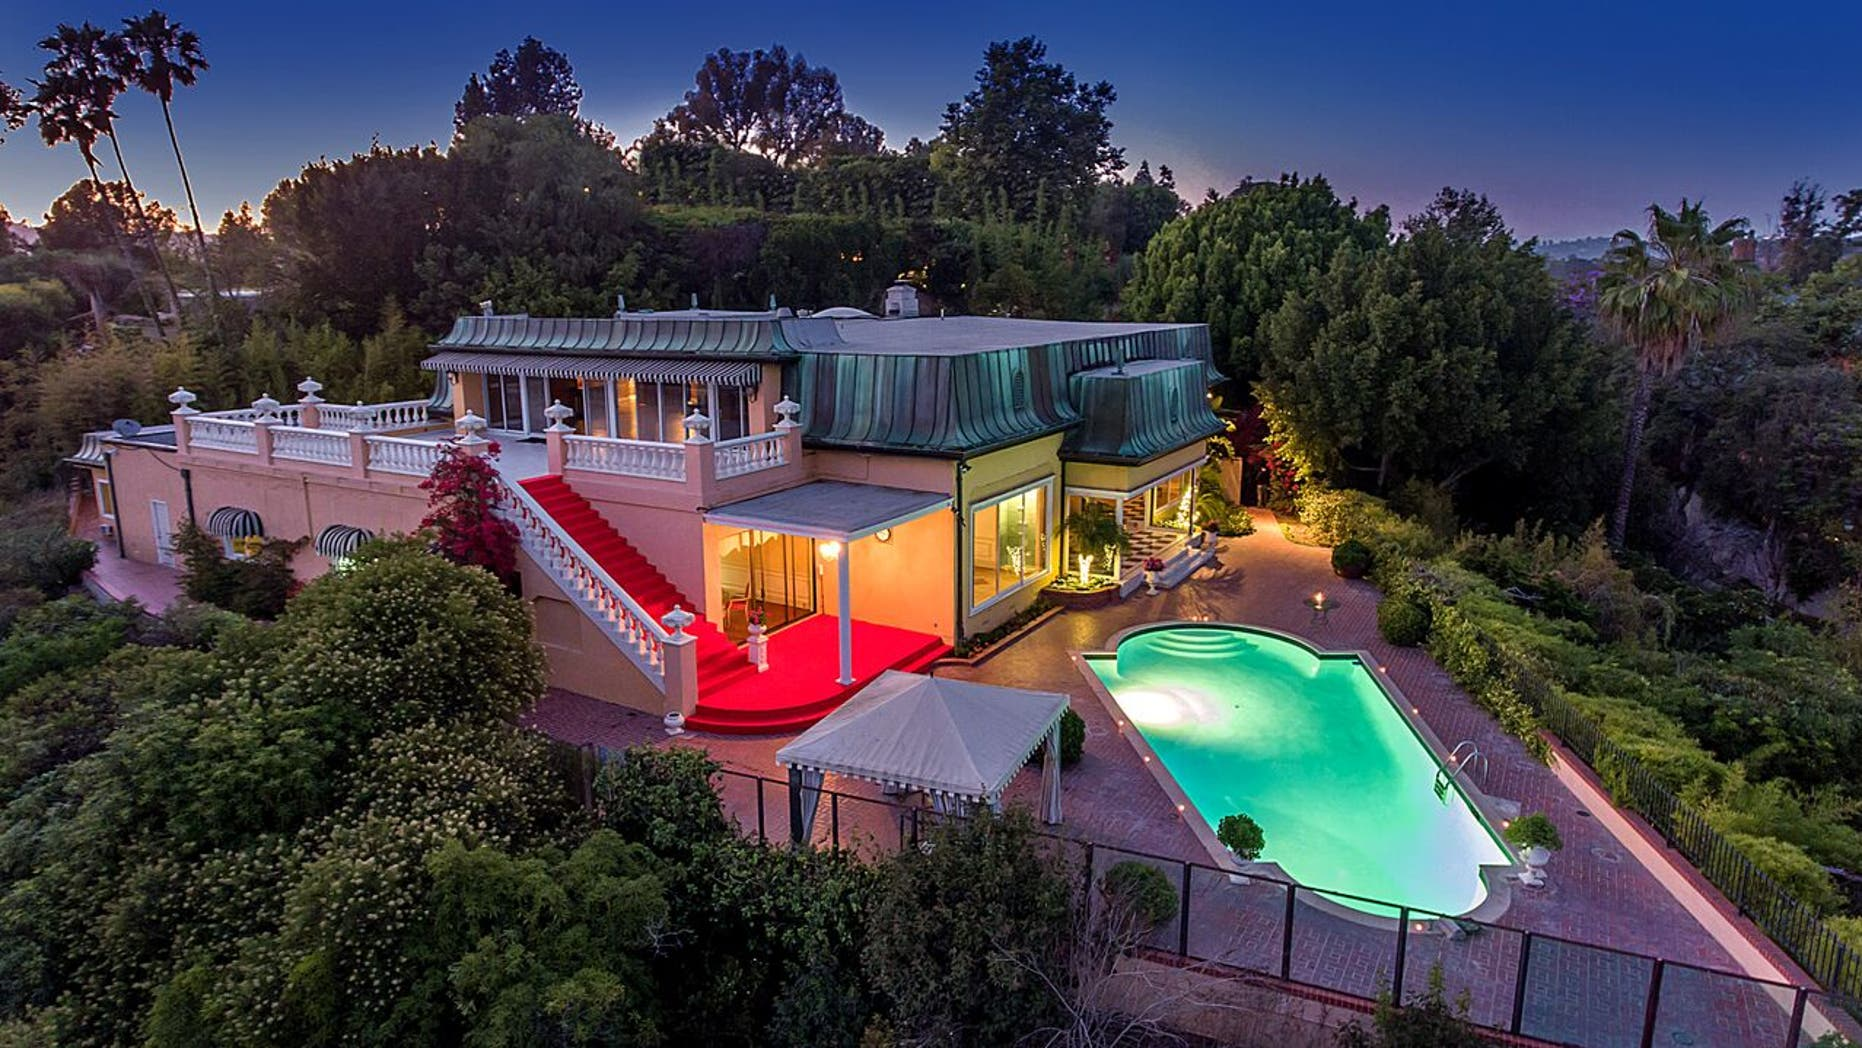 This classic 1950s Bel Air mansion is also rumored to be occupied by Howard Hughes and Elvis Presley.